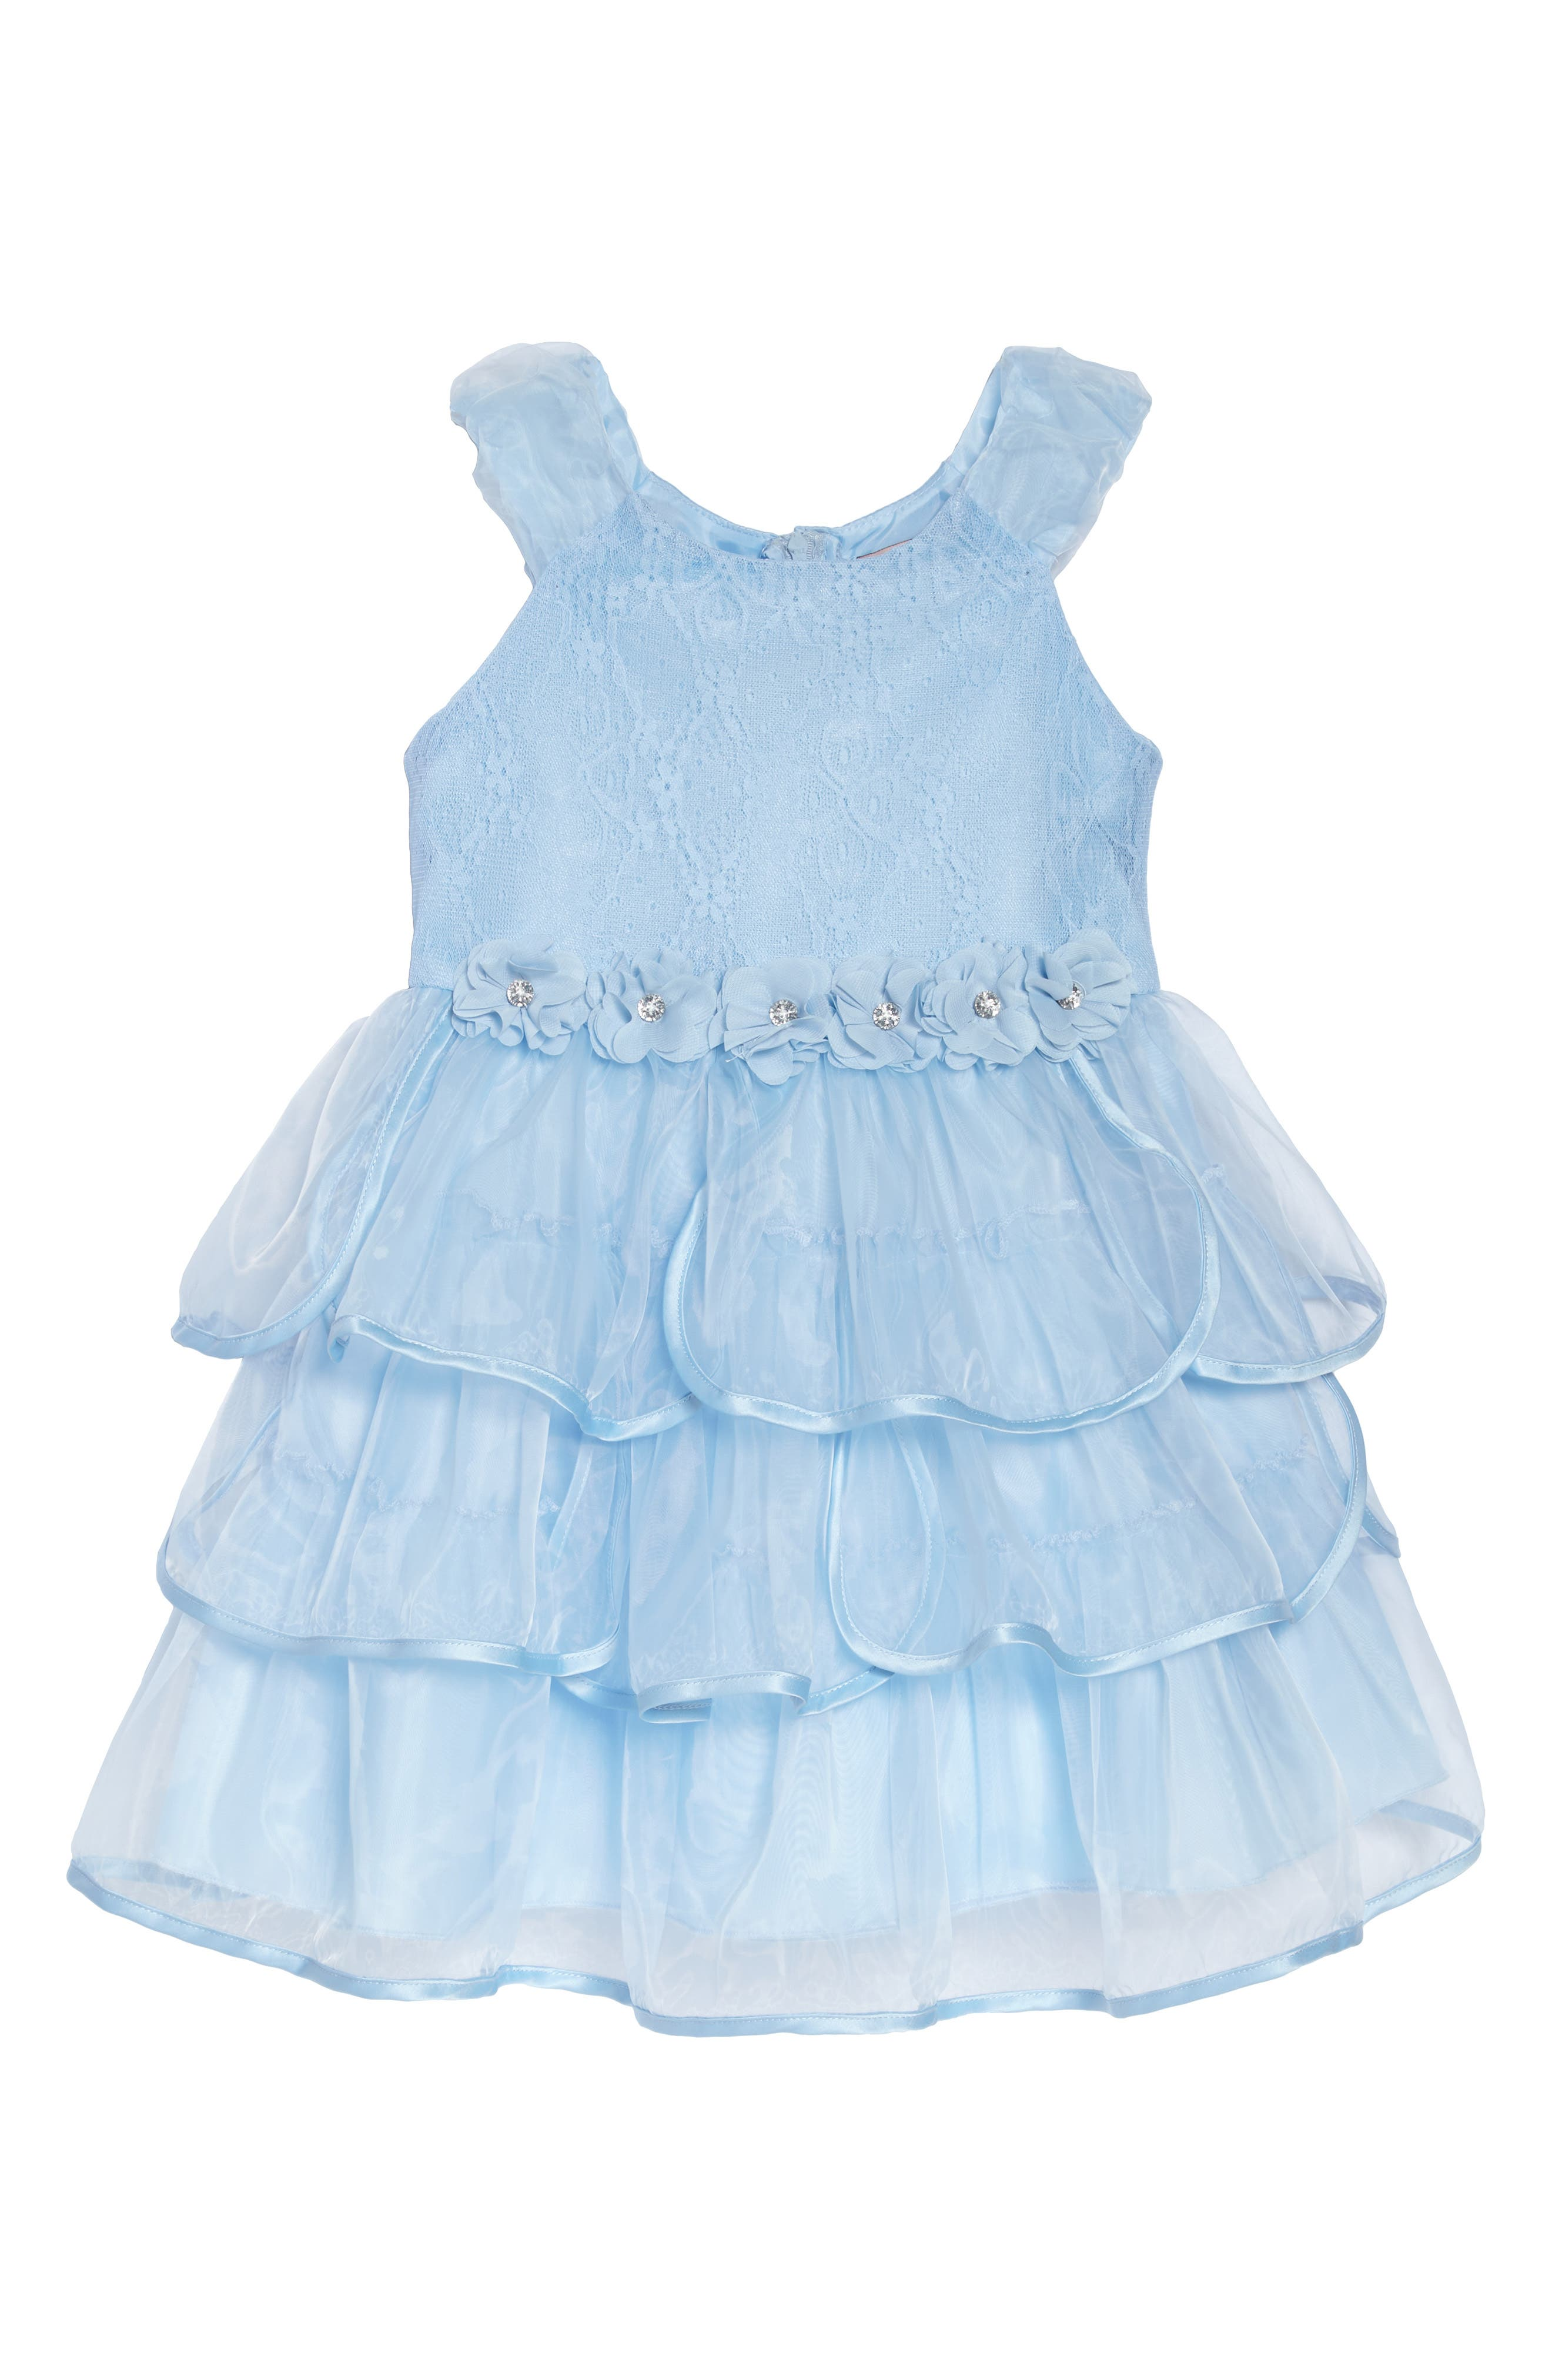 Tiered Organza Party Dress,                             Main thumbnail 1, color,                             452